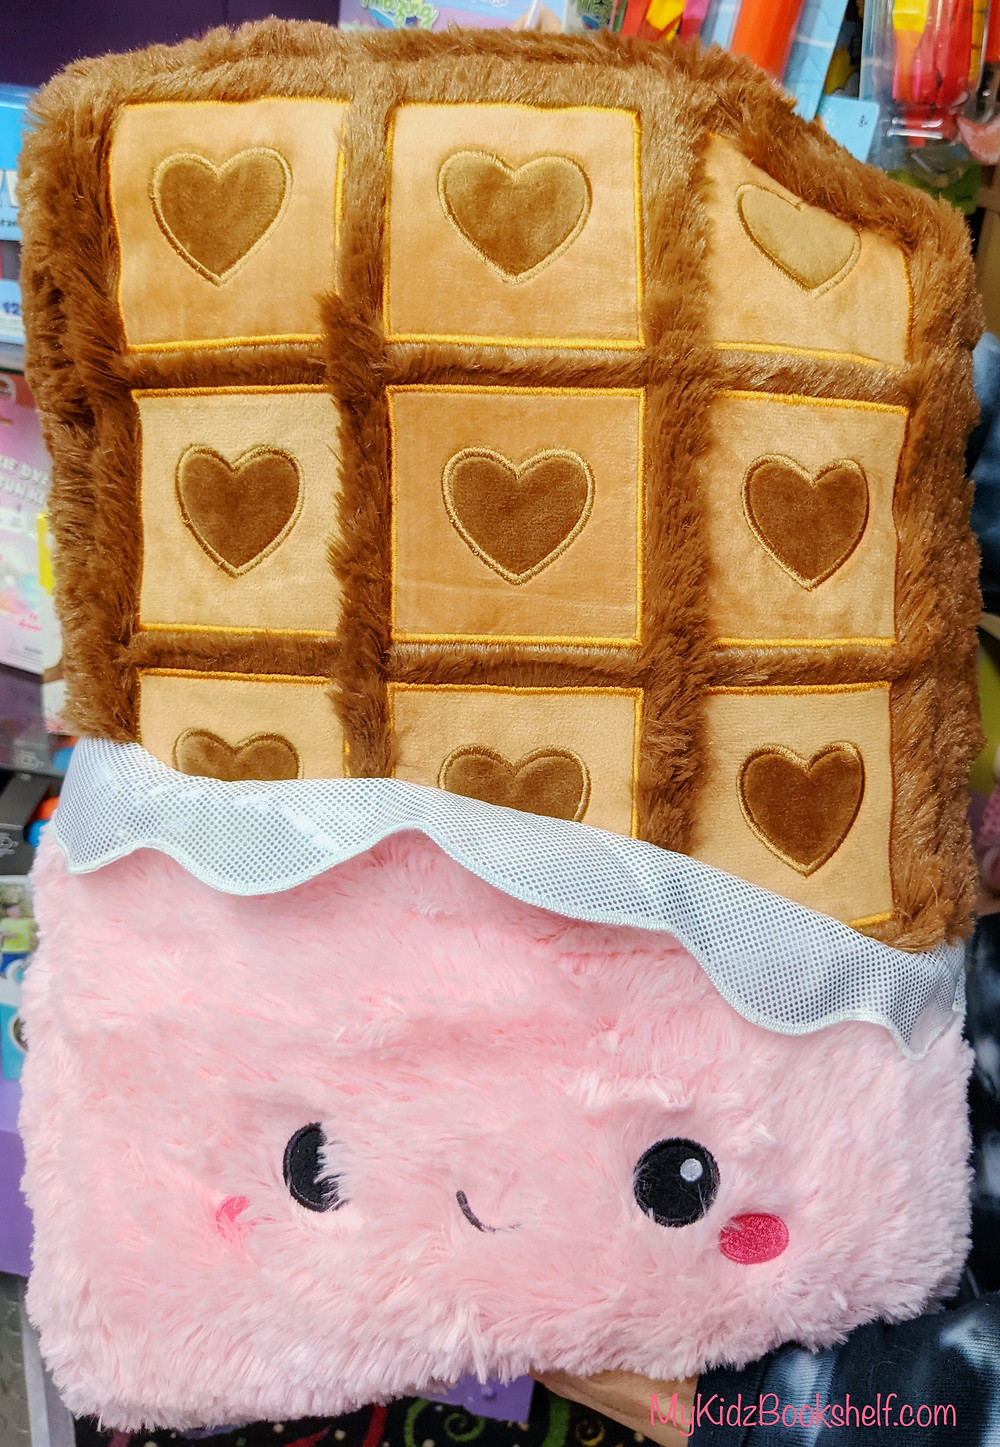 Squishable pillow in the shape of a large chocolate bar with a smiling face